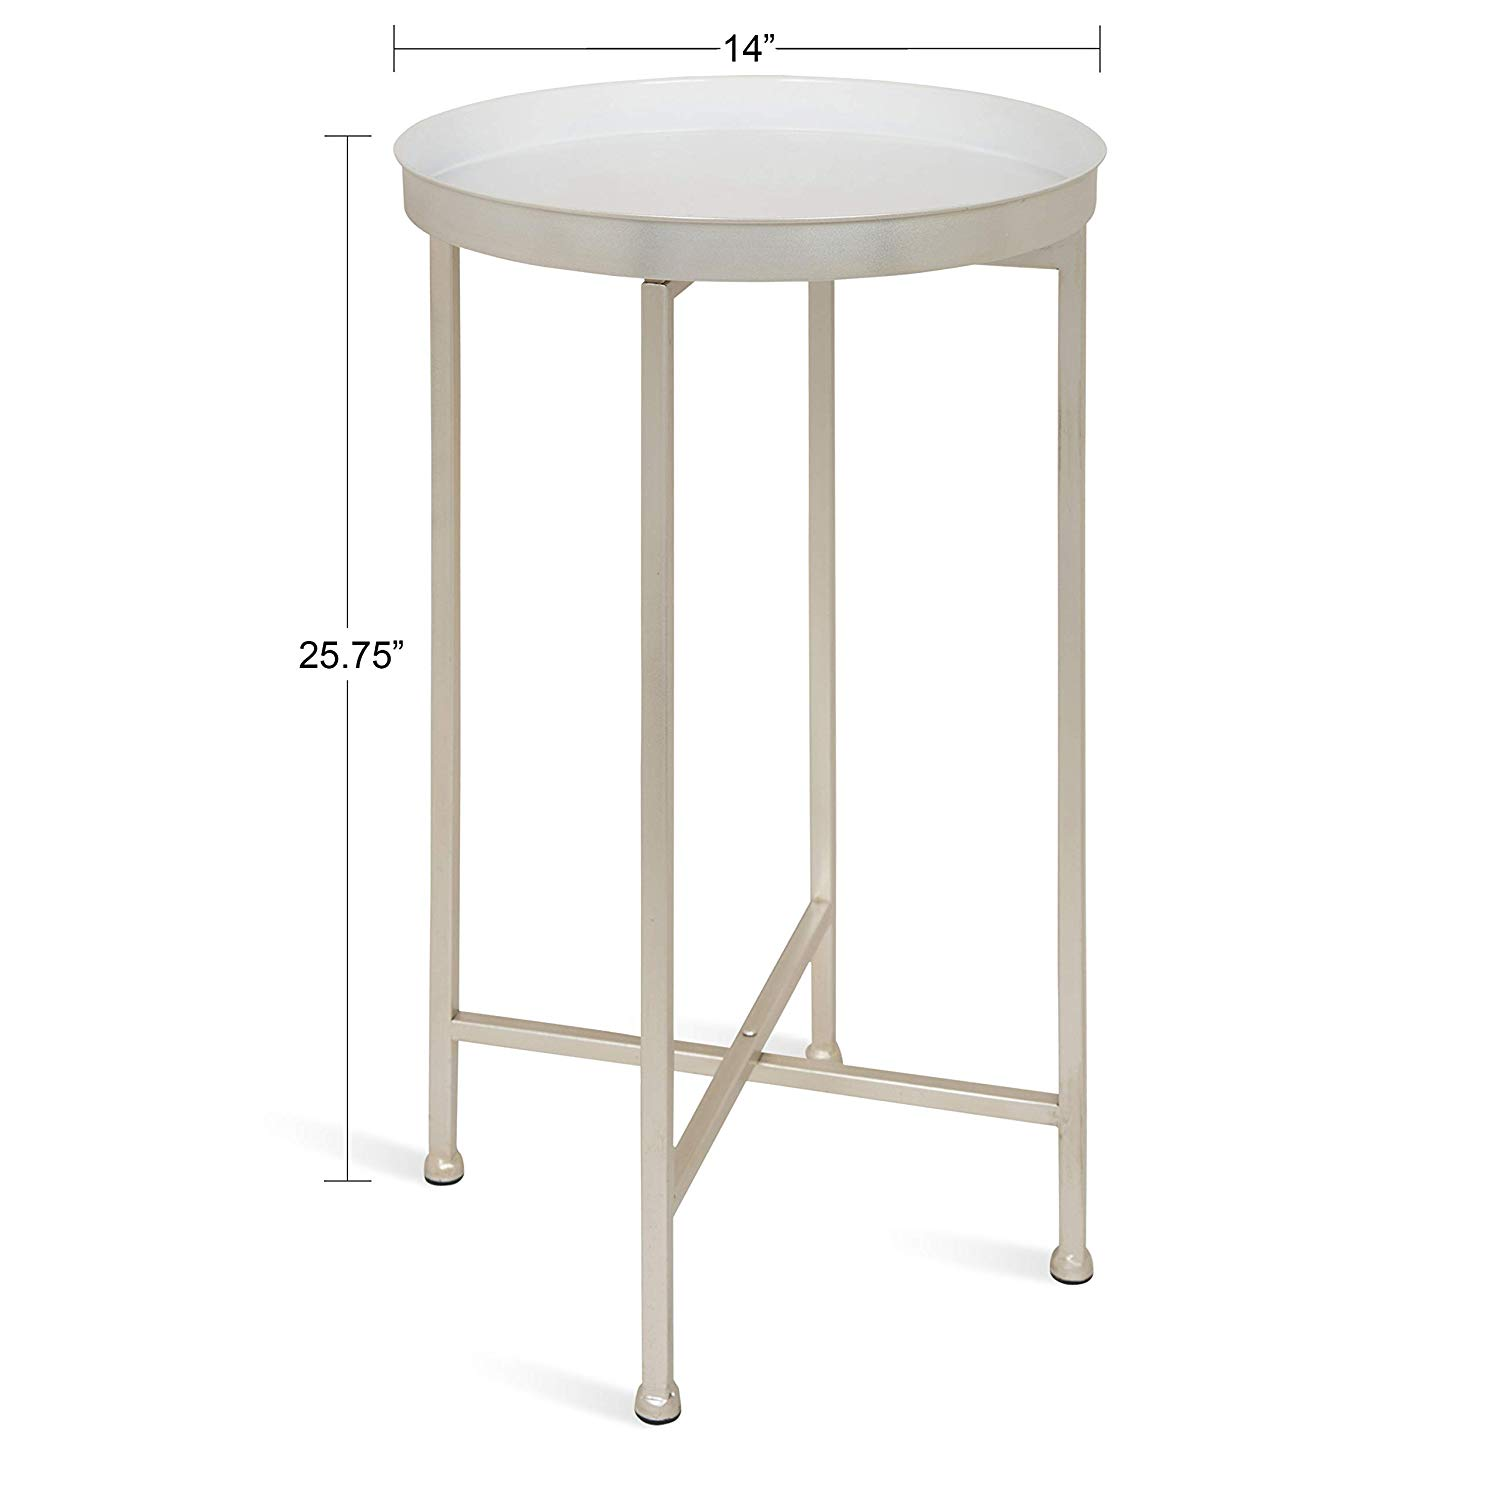 kate and laurel celia round metal foldable tray accent table white with silver base kitchen dining christmas tablecloth runner sets tall bistro chairs indoor drum set cymbals